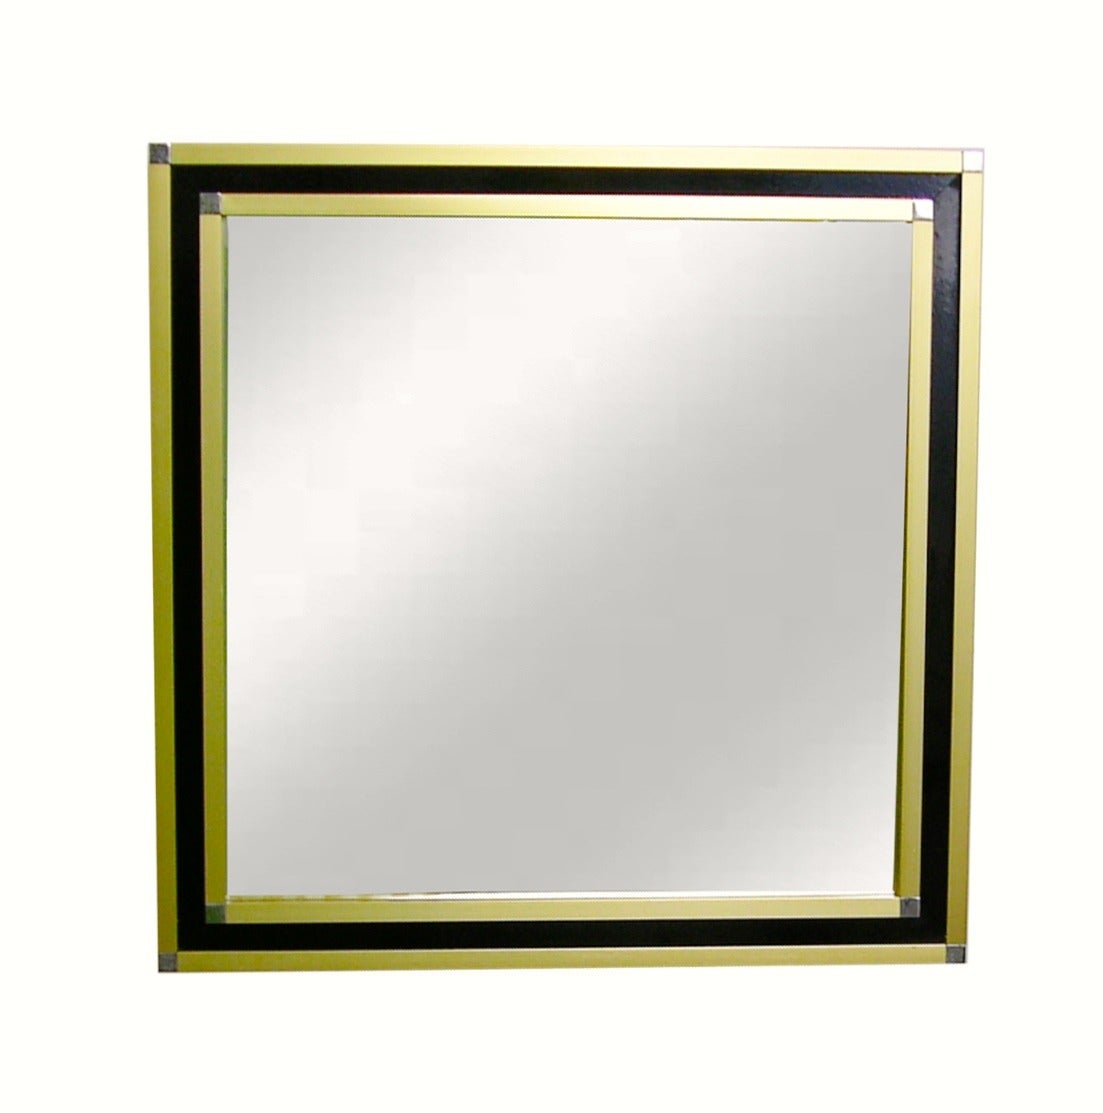 1970s rare mirror by the Italian Company Mario Sabot, where the refined design is centered on the square shape. 